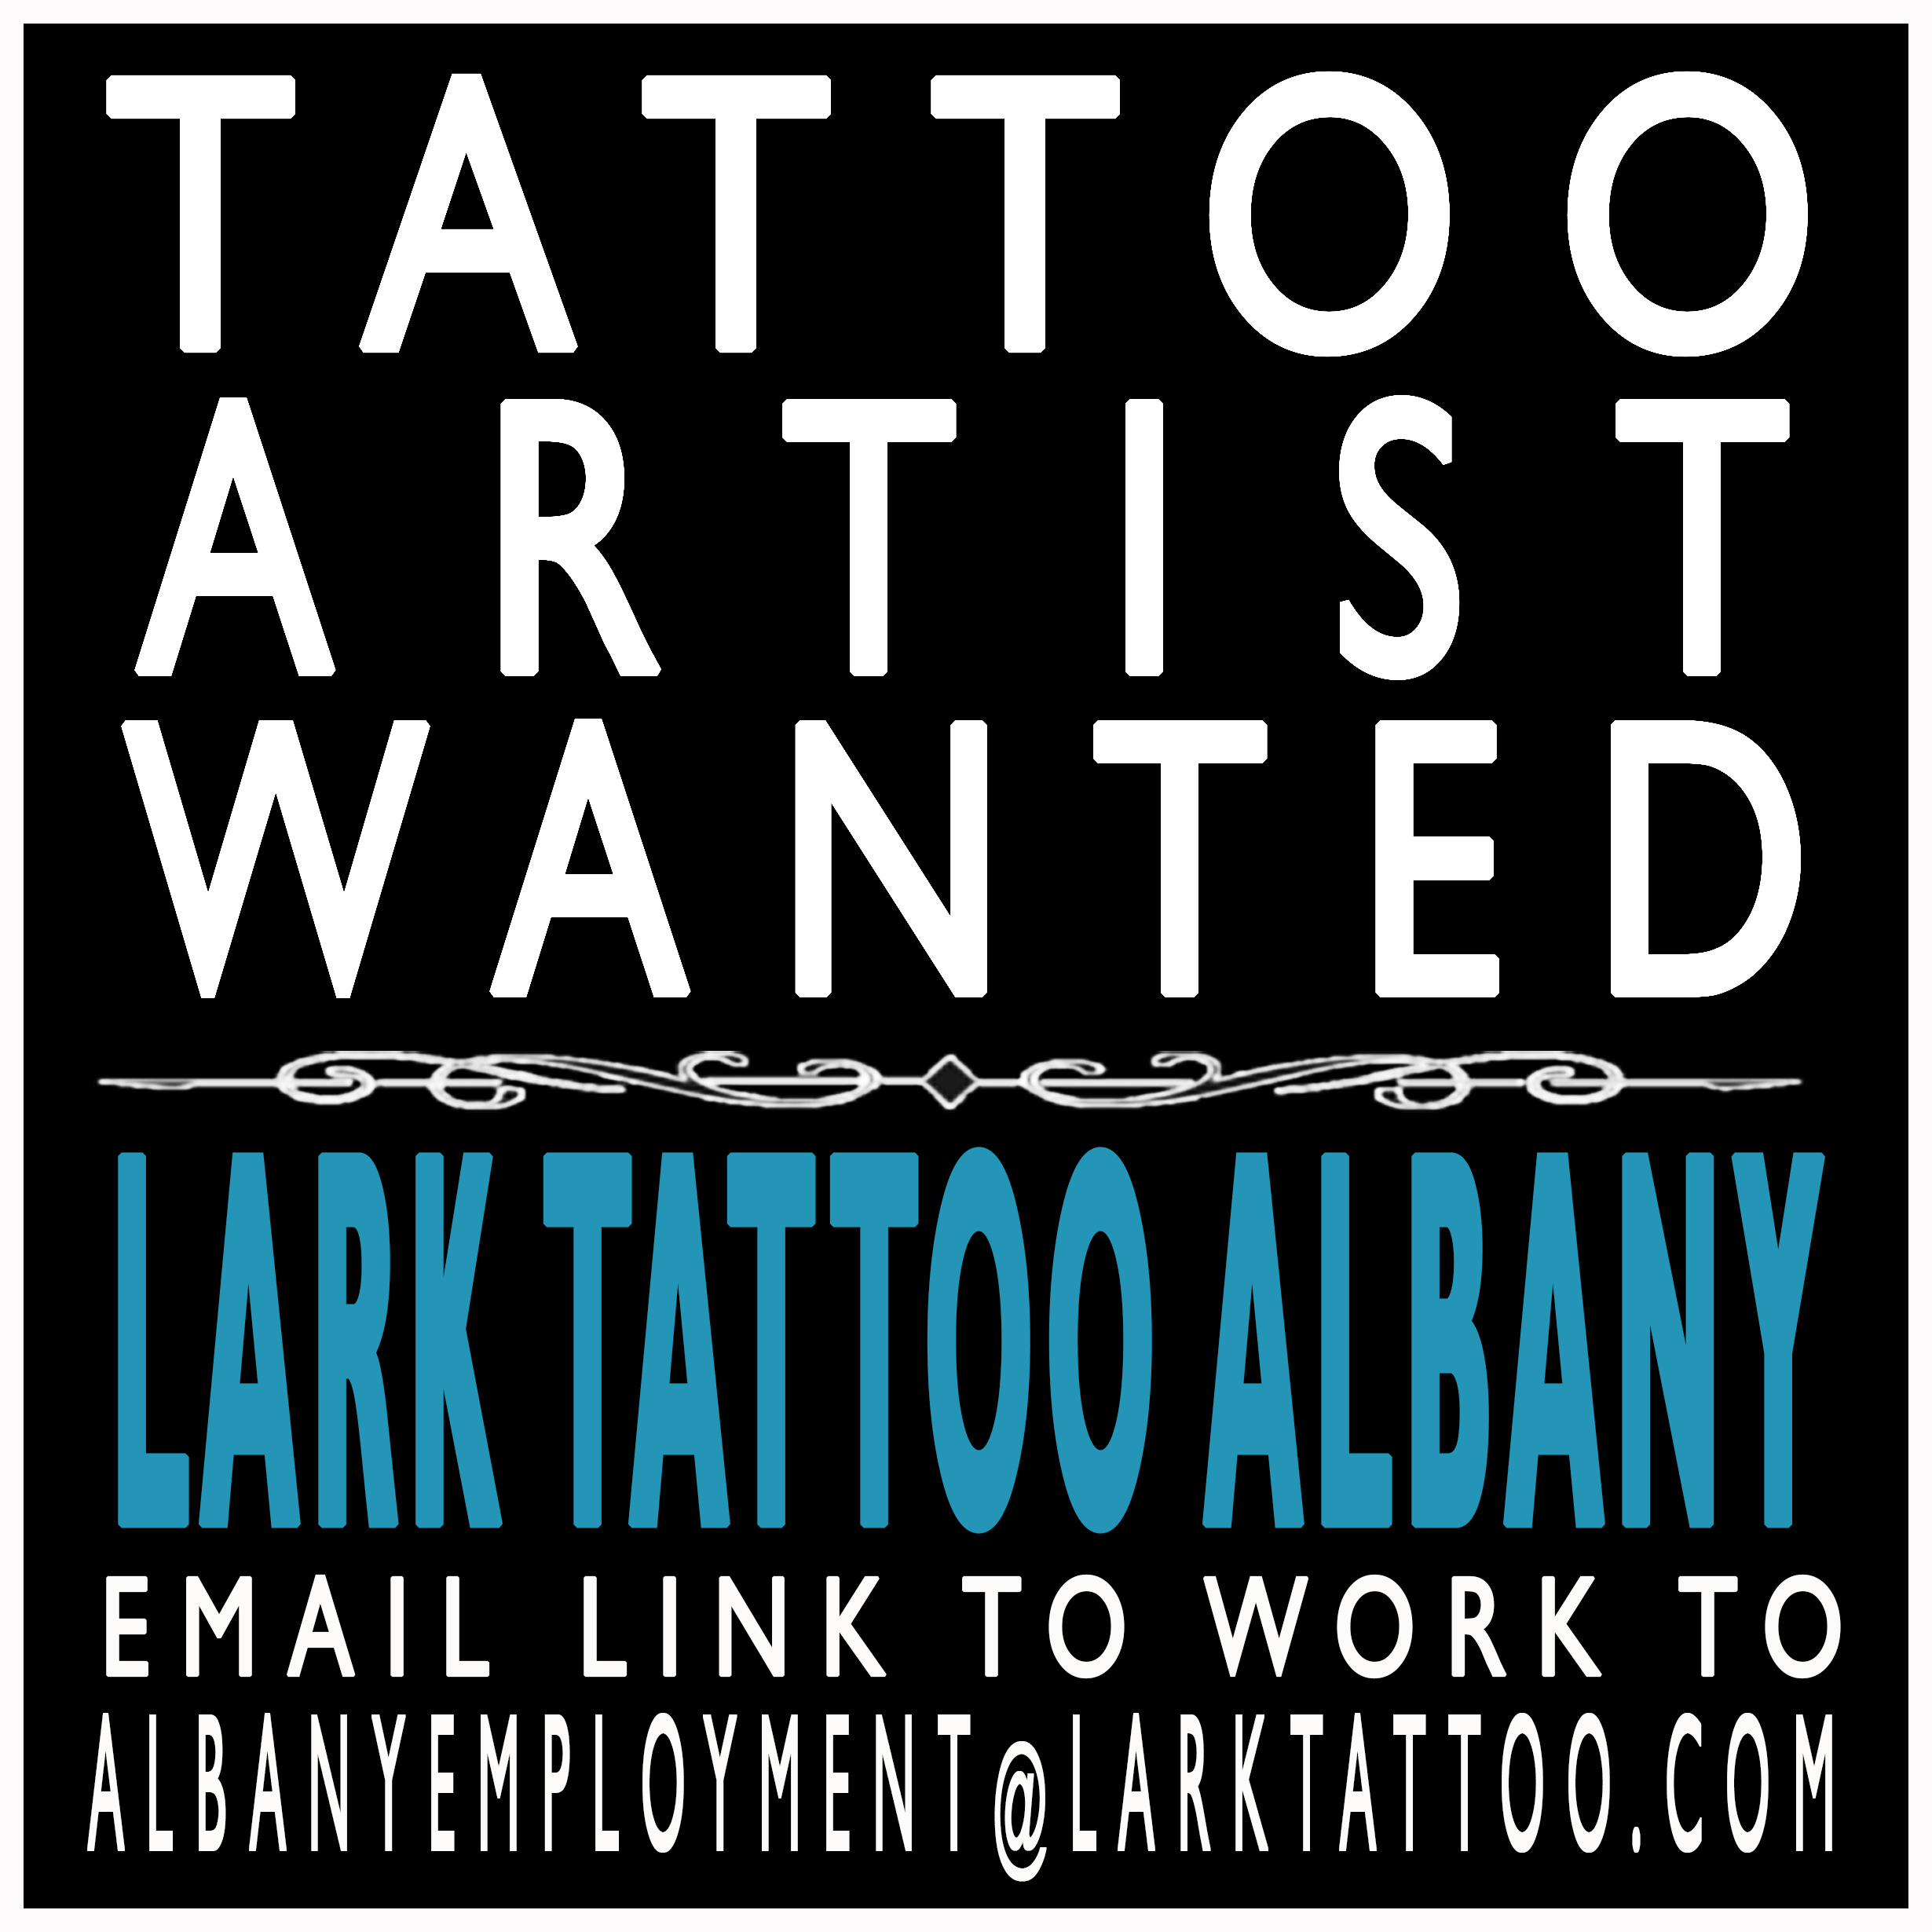 albany ny newyork help help wanted wanted job posting tattoojob